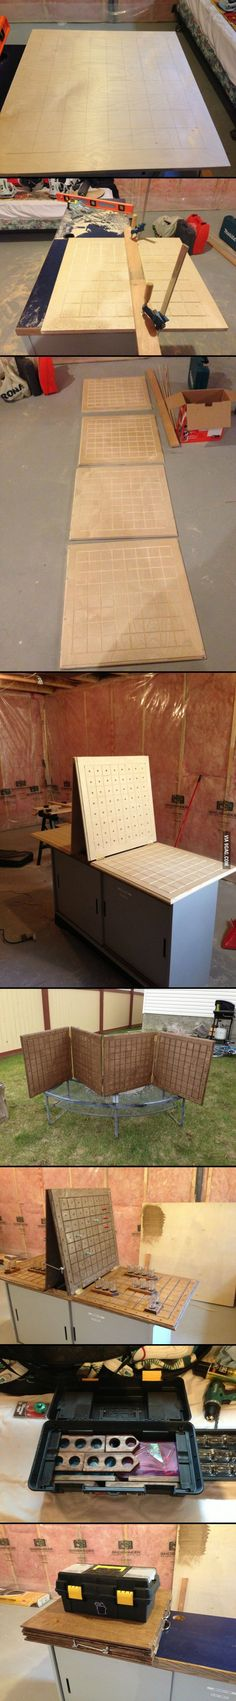 Battleshots- For when you need a game to get hammered.